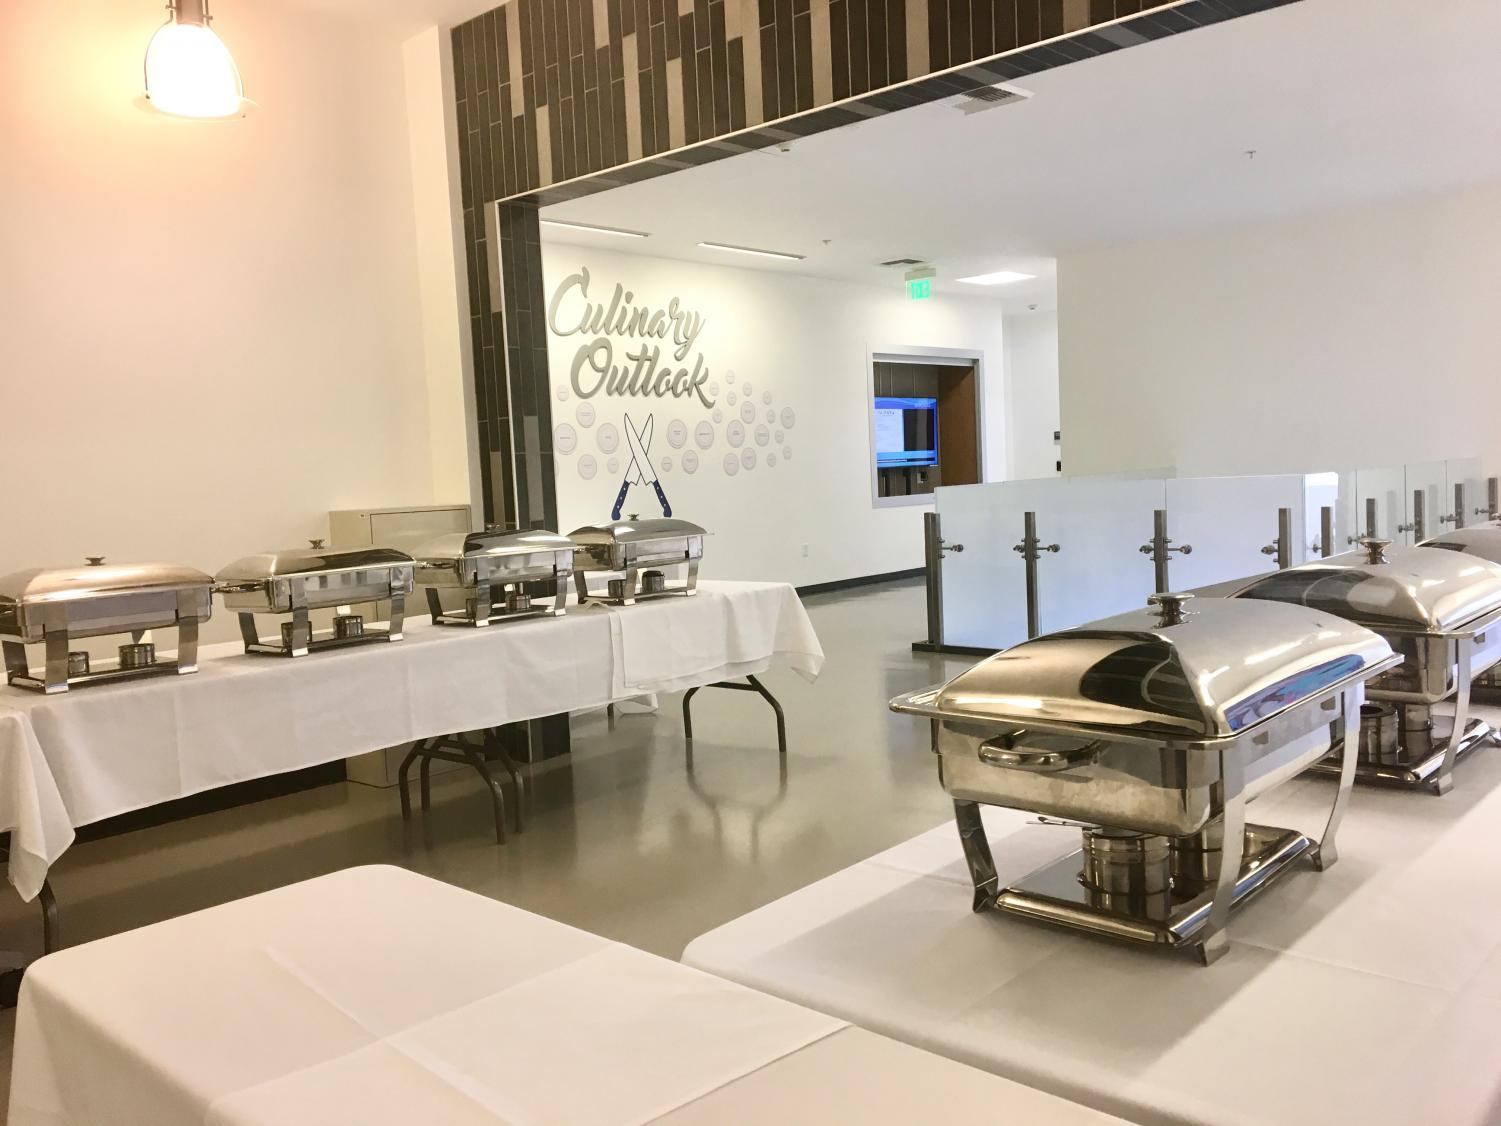 Culinary arts students prepared a Thanksgiving feast for all students to enjoy.